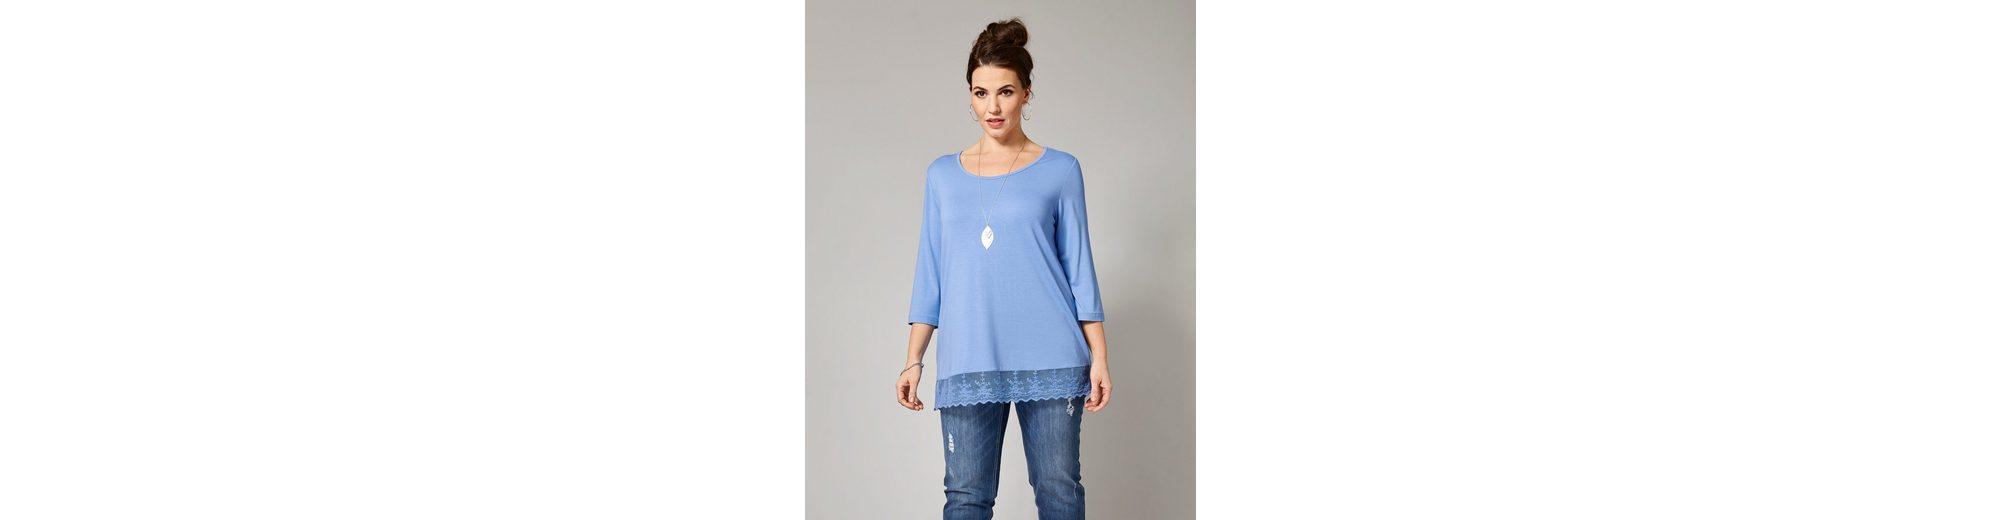 by Happy mit Spitze Sara Lindholm Happy Sara Lindholm Size Size by Shirt pxqxgY